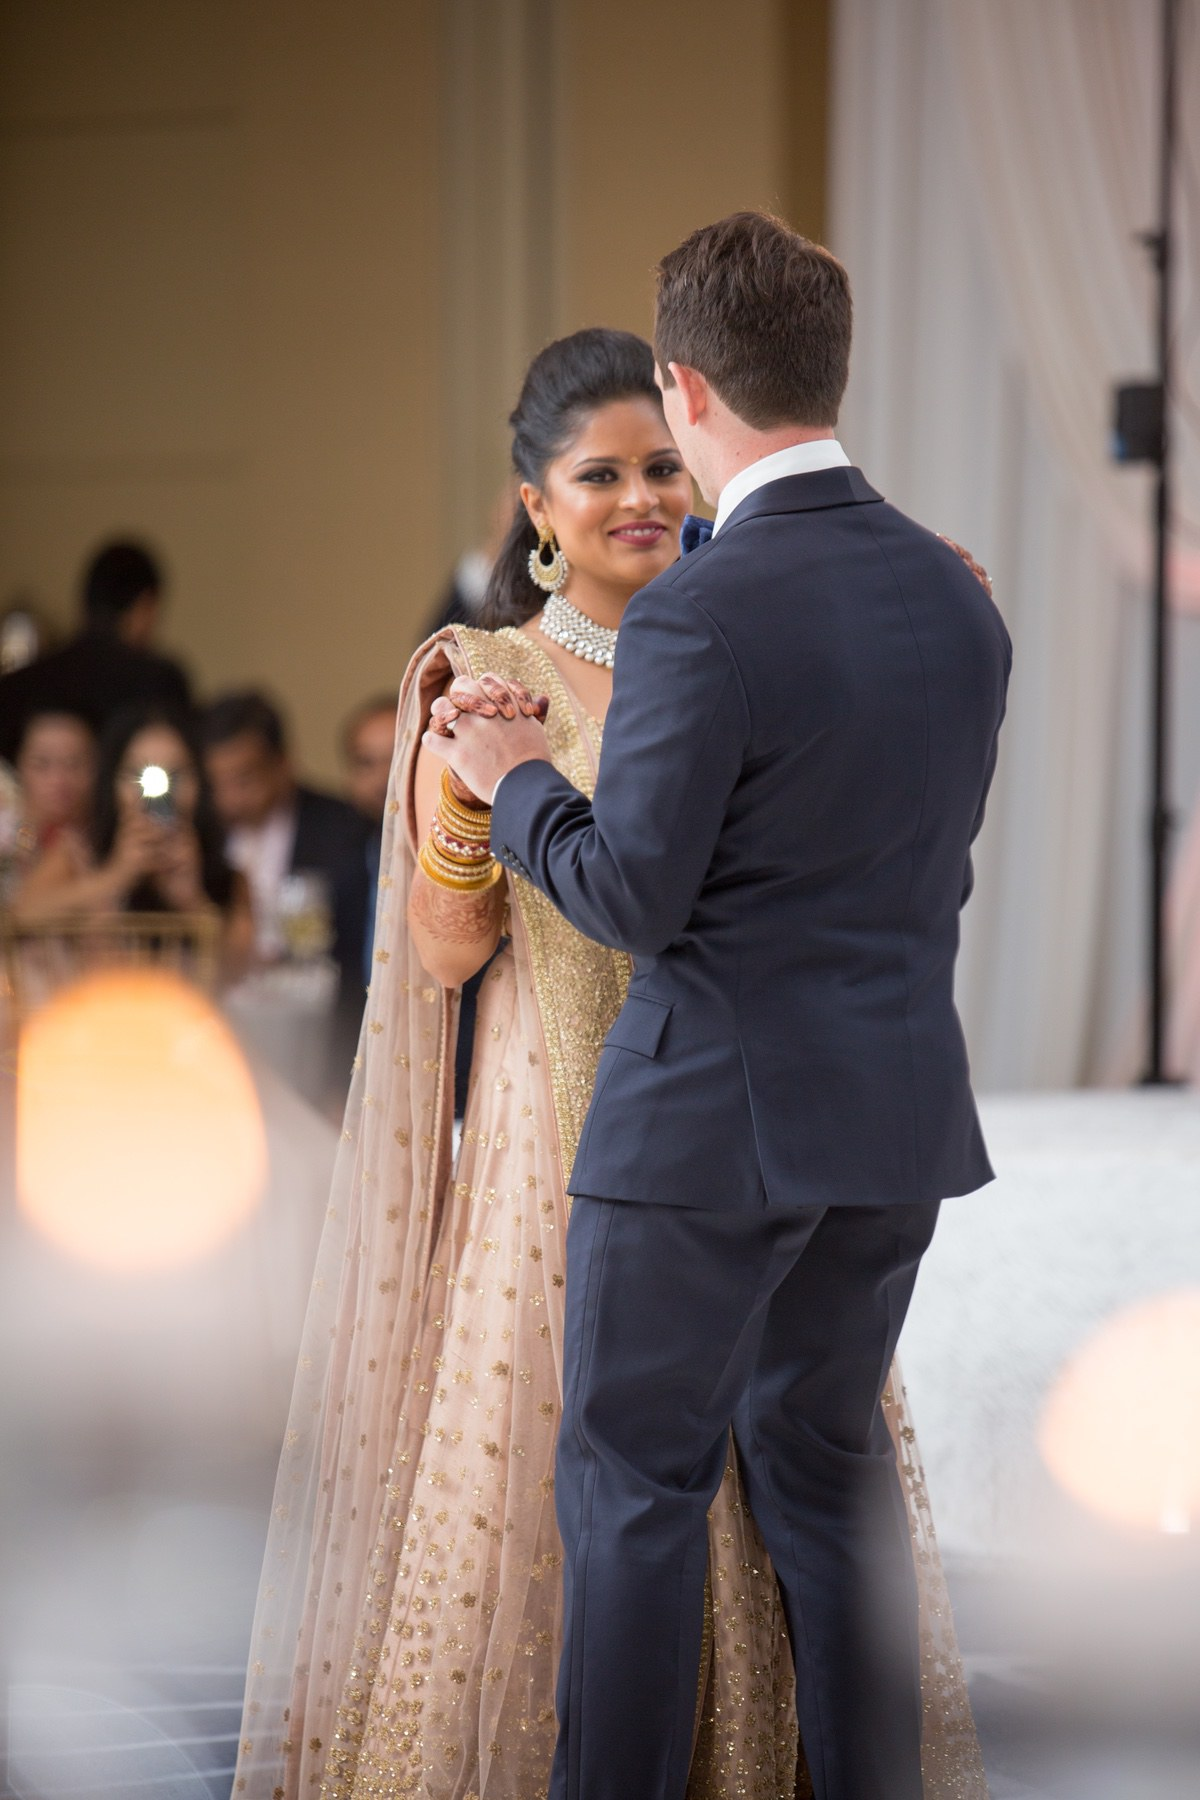 Le Cape Weddings - South Asian Wedding - Trisha and Jordan - Reception -36.jpg